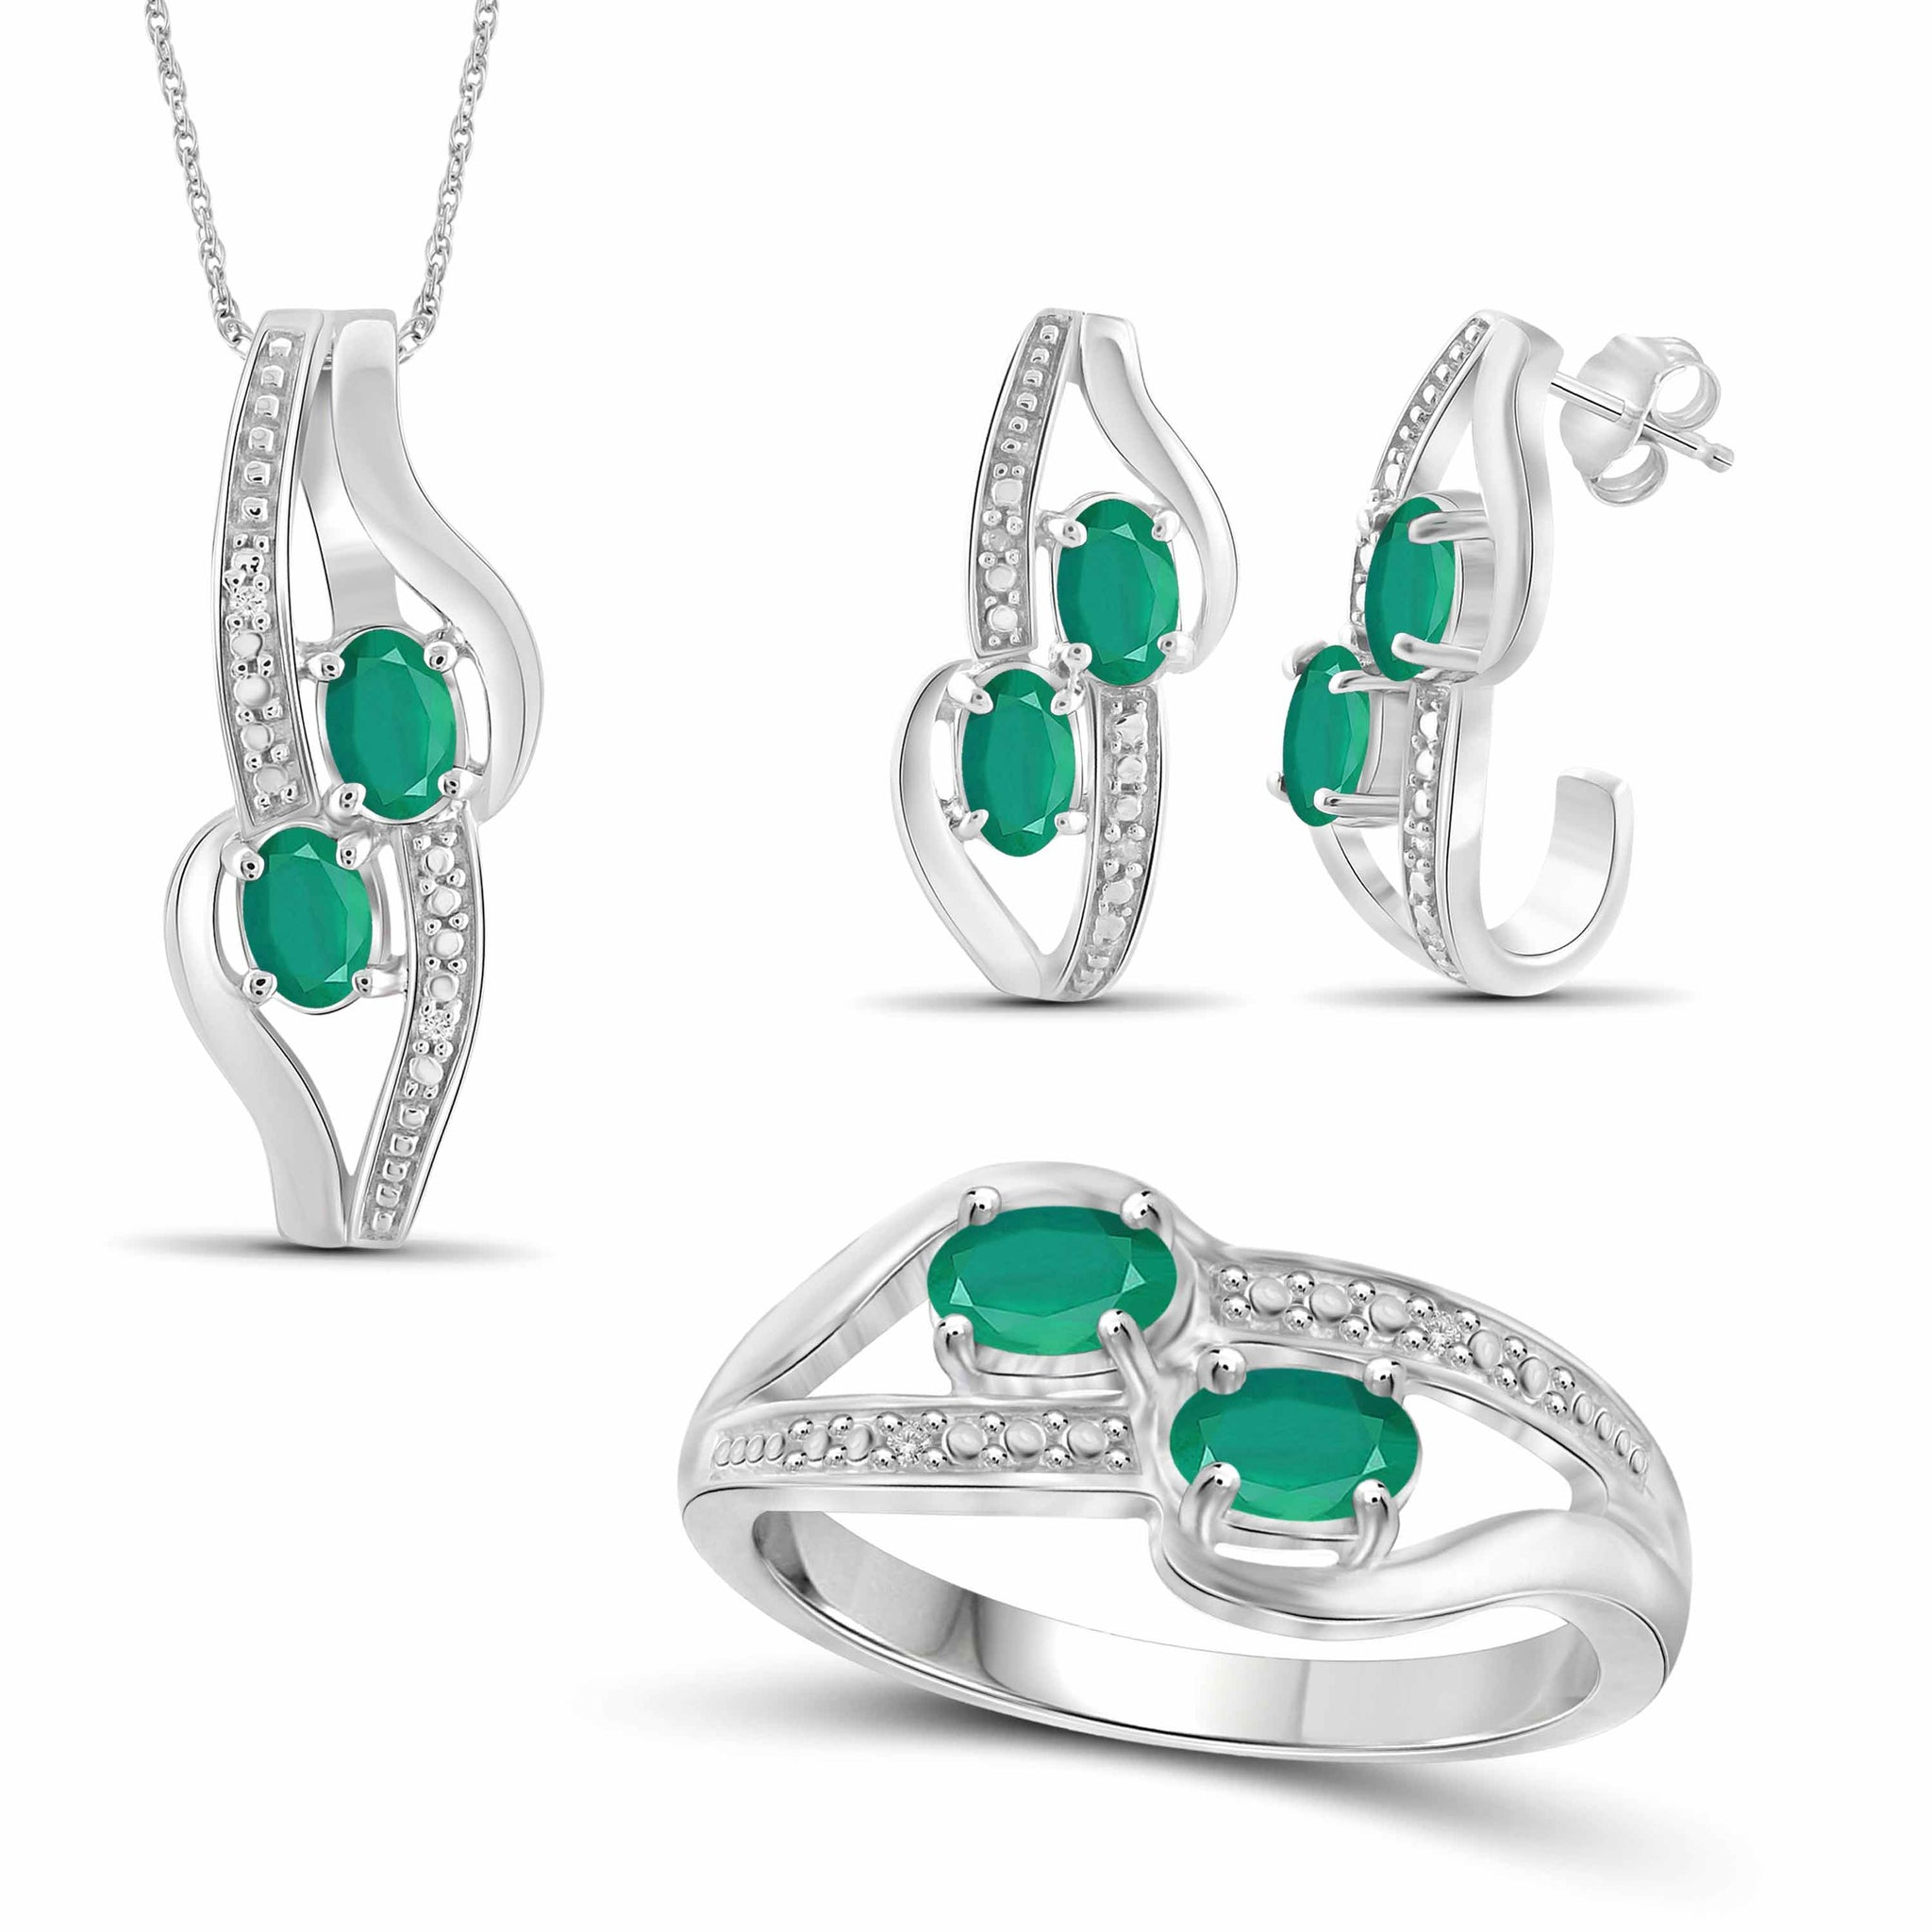 JewelonFire 1.80 Carat T.G.W. Emerald And 1/20 Carat T.W. White Diamond Sterling Silver 3 Piece Jewelry Set - Assorted Colors